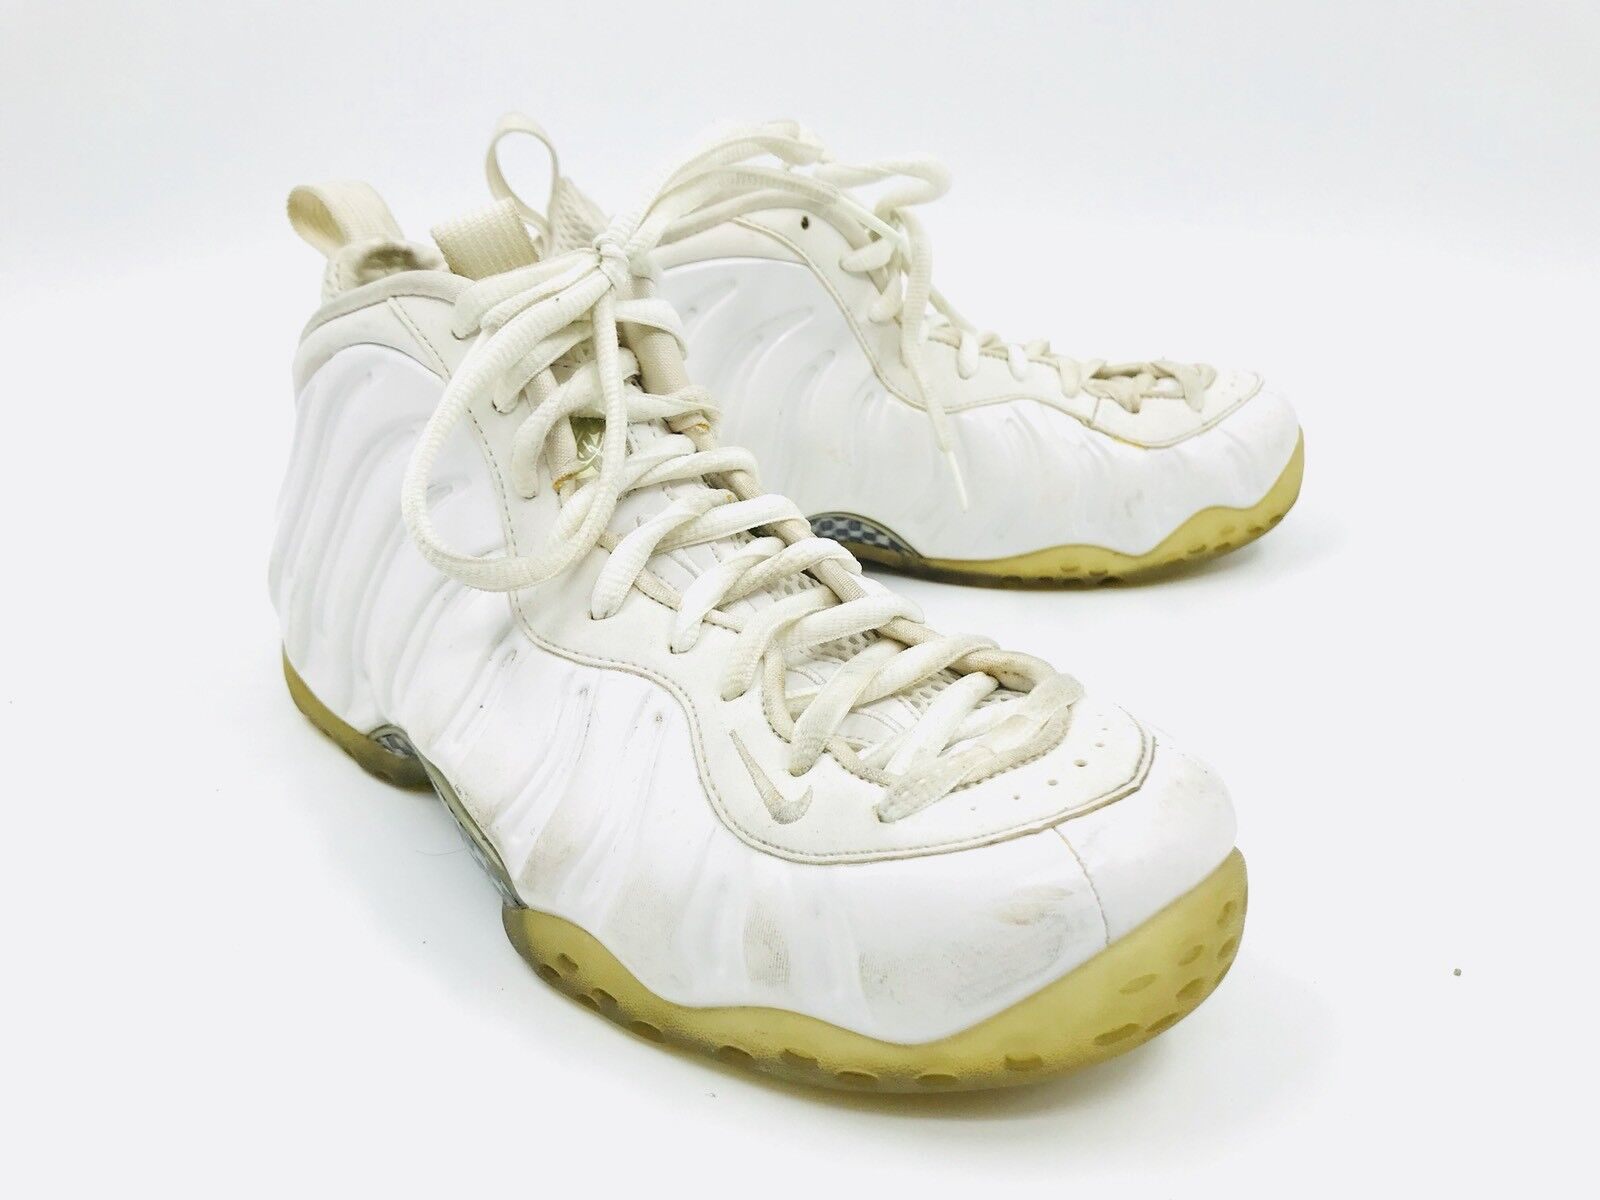 Nike Air Foamposite One Sport Whiteout 314996-100 Mens Size 9